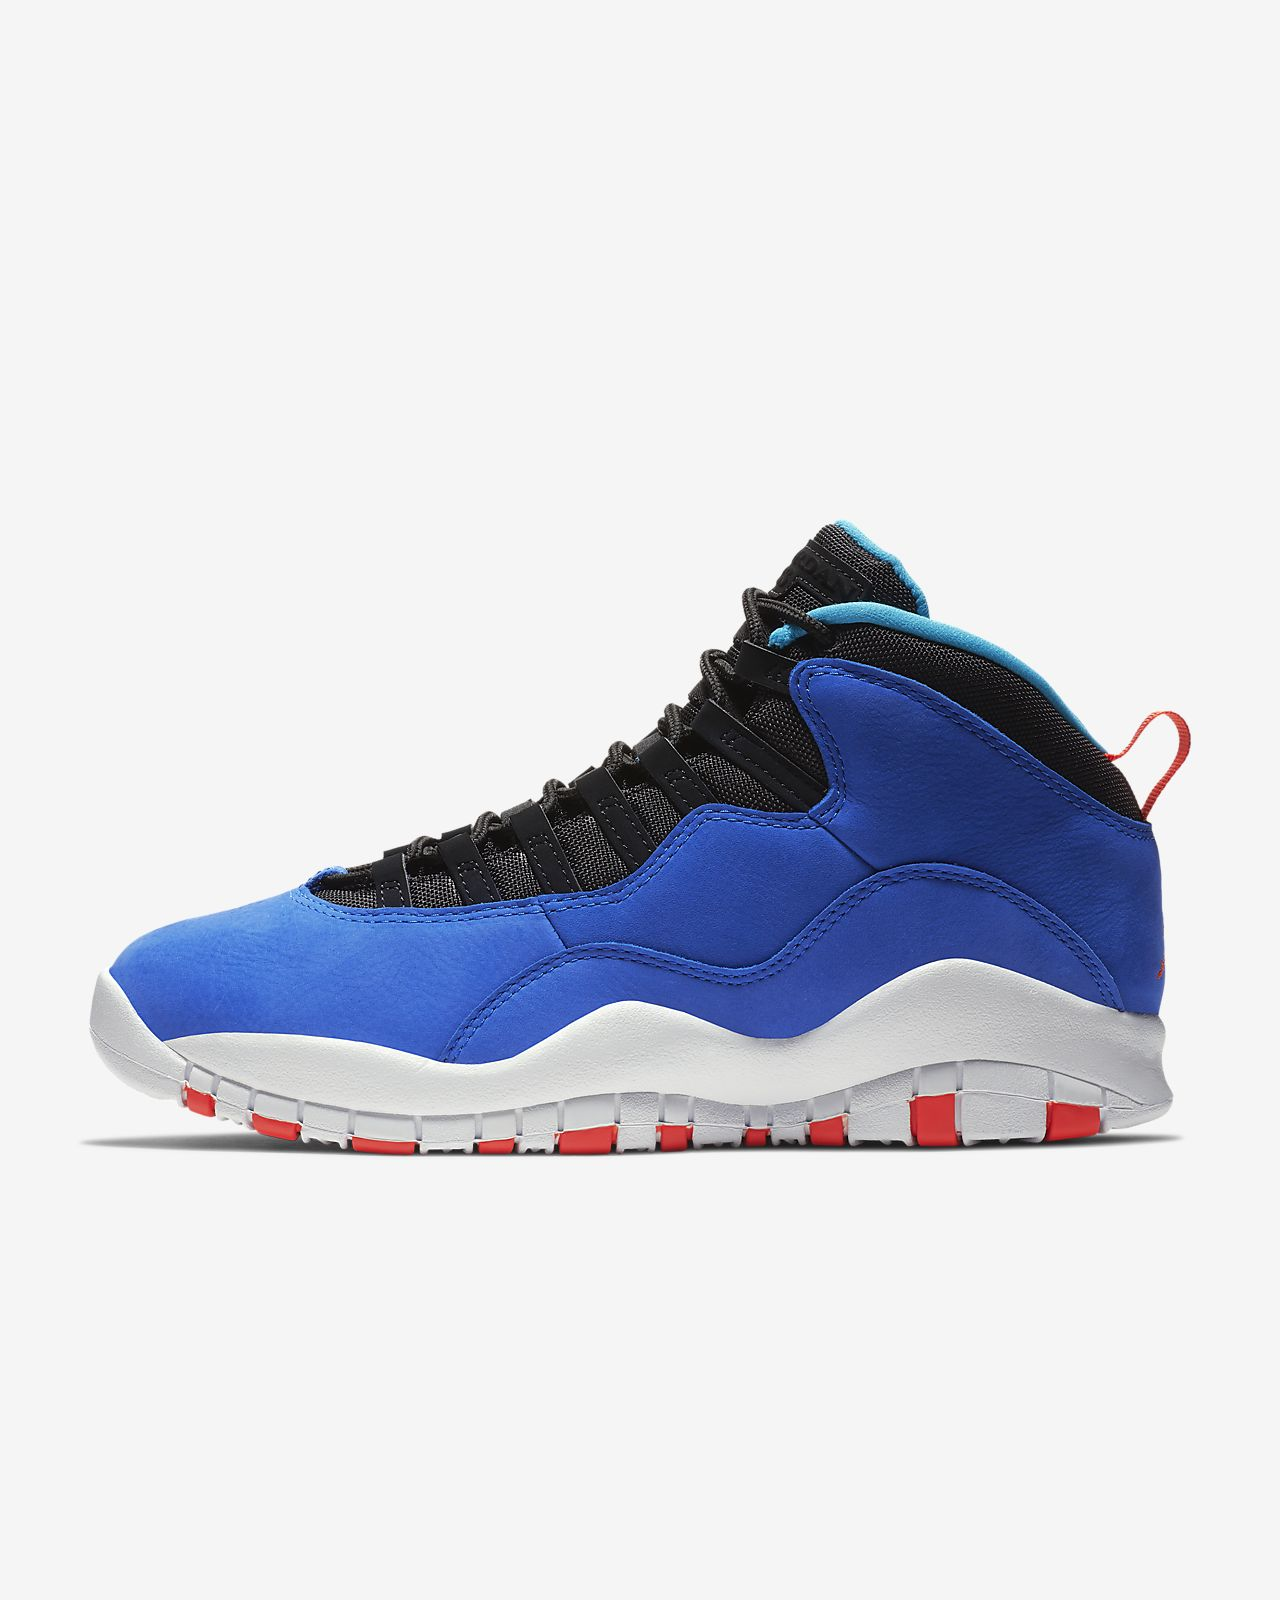 separation shoes c189b 08e4b ... Calzado para hombre Air Jordan 10 Retro